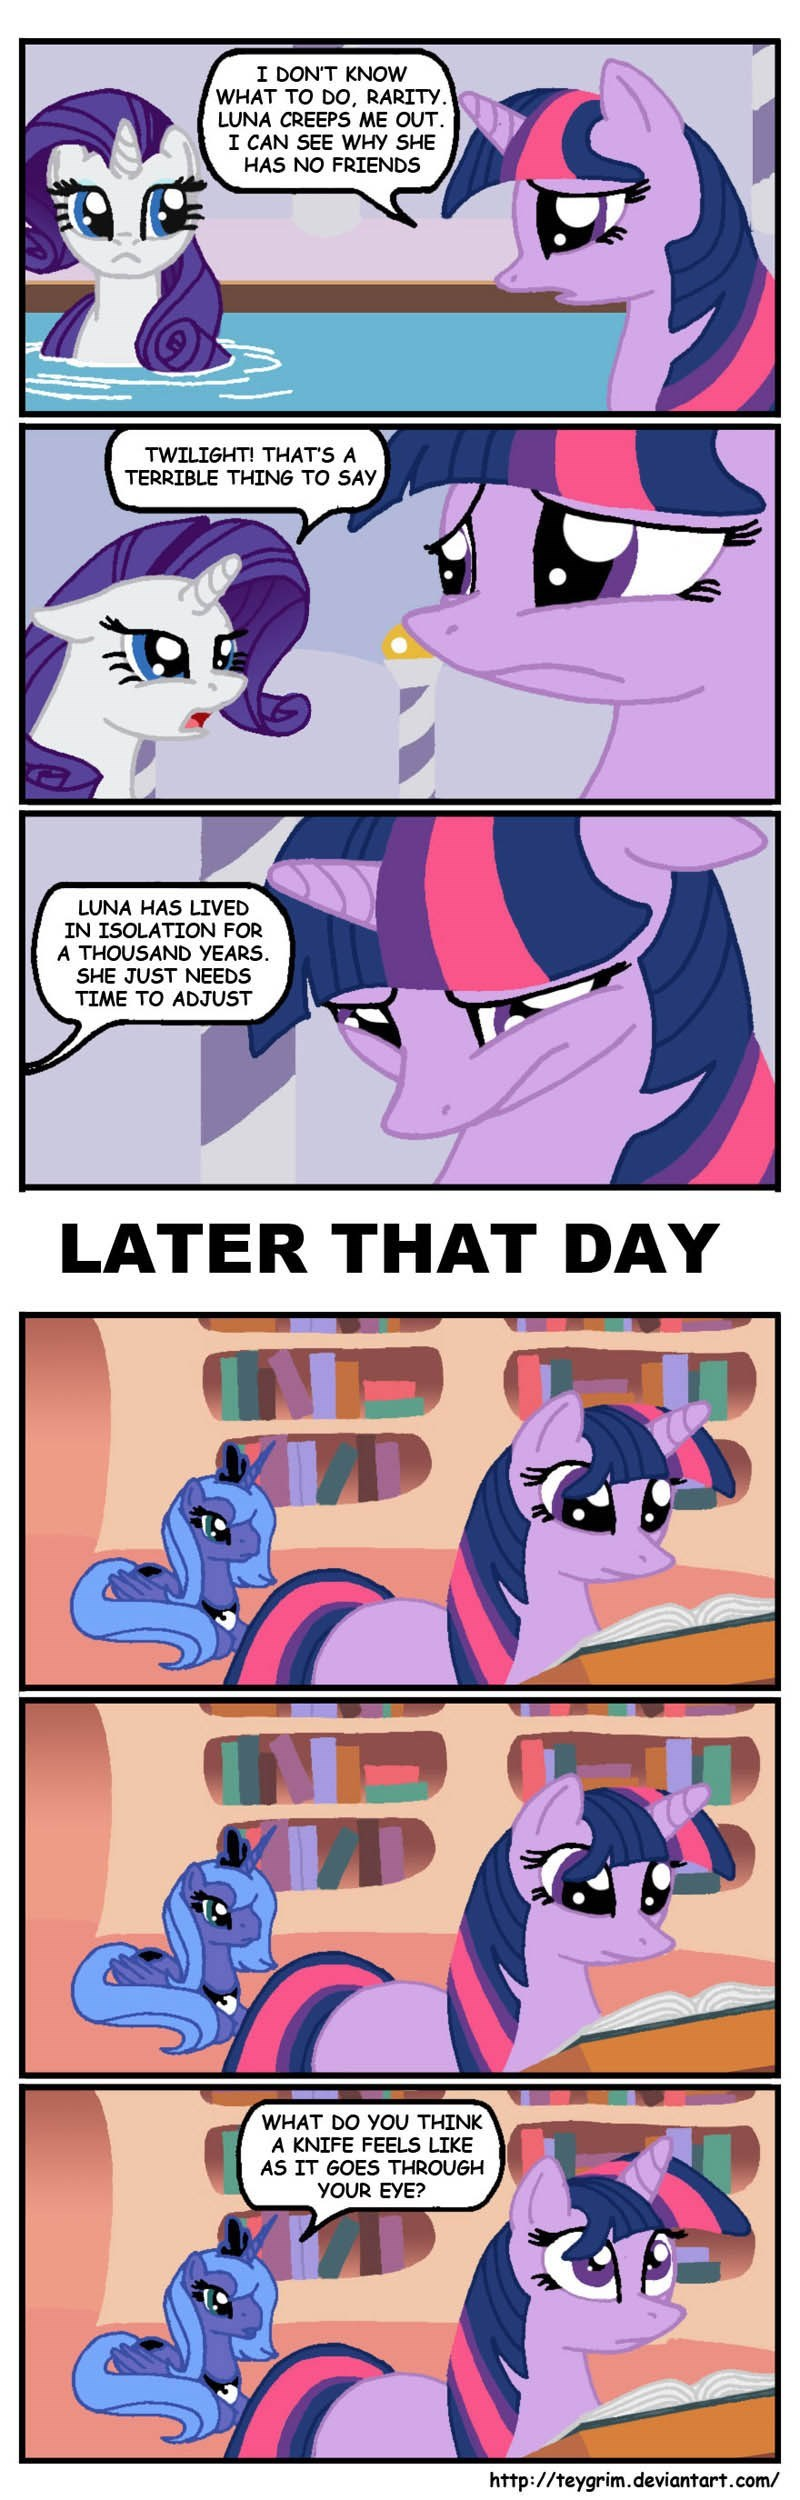 twilight sparkle princess luna rarity comic - 8971991040